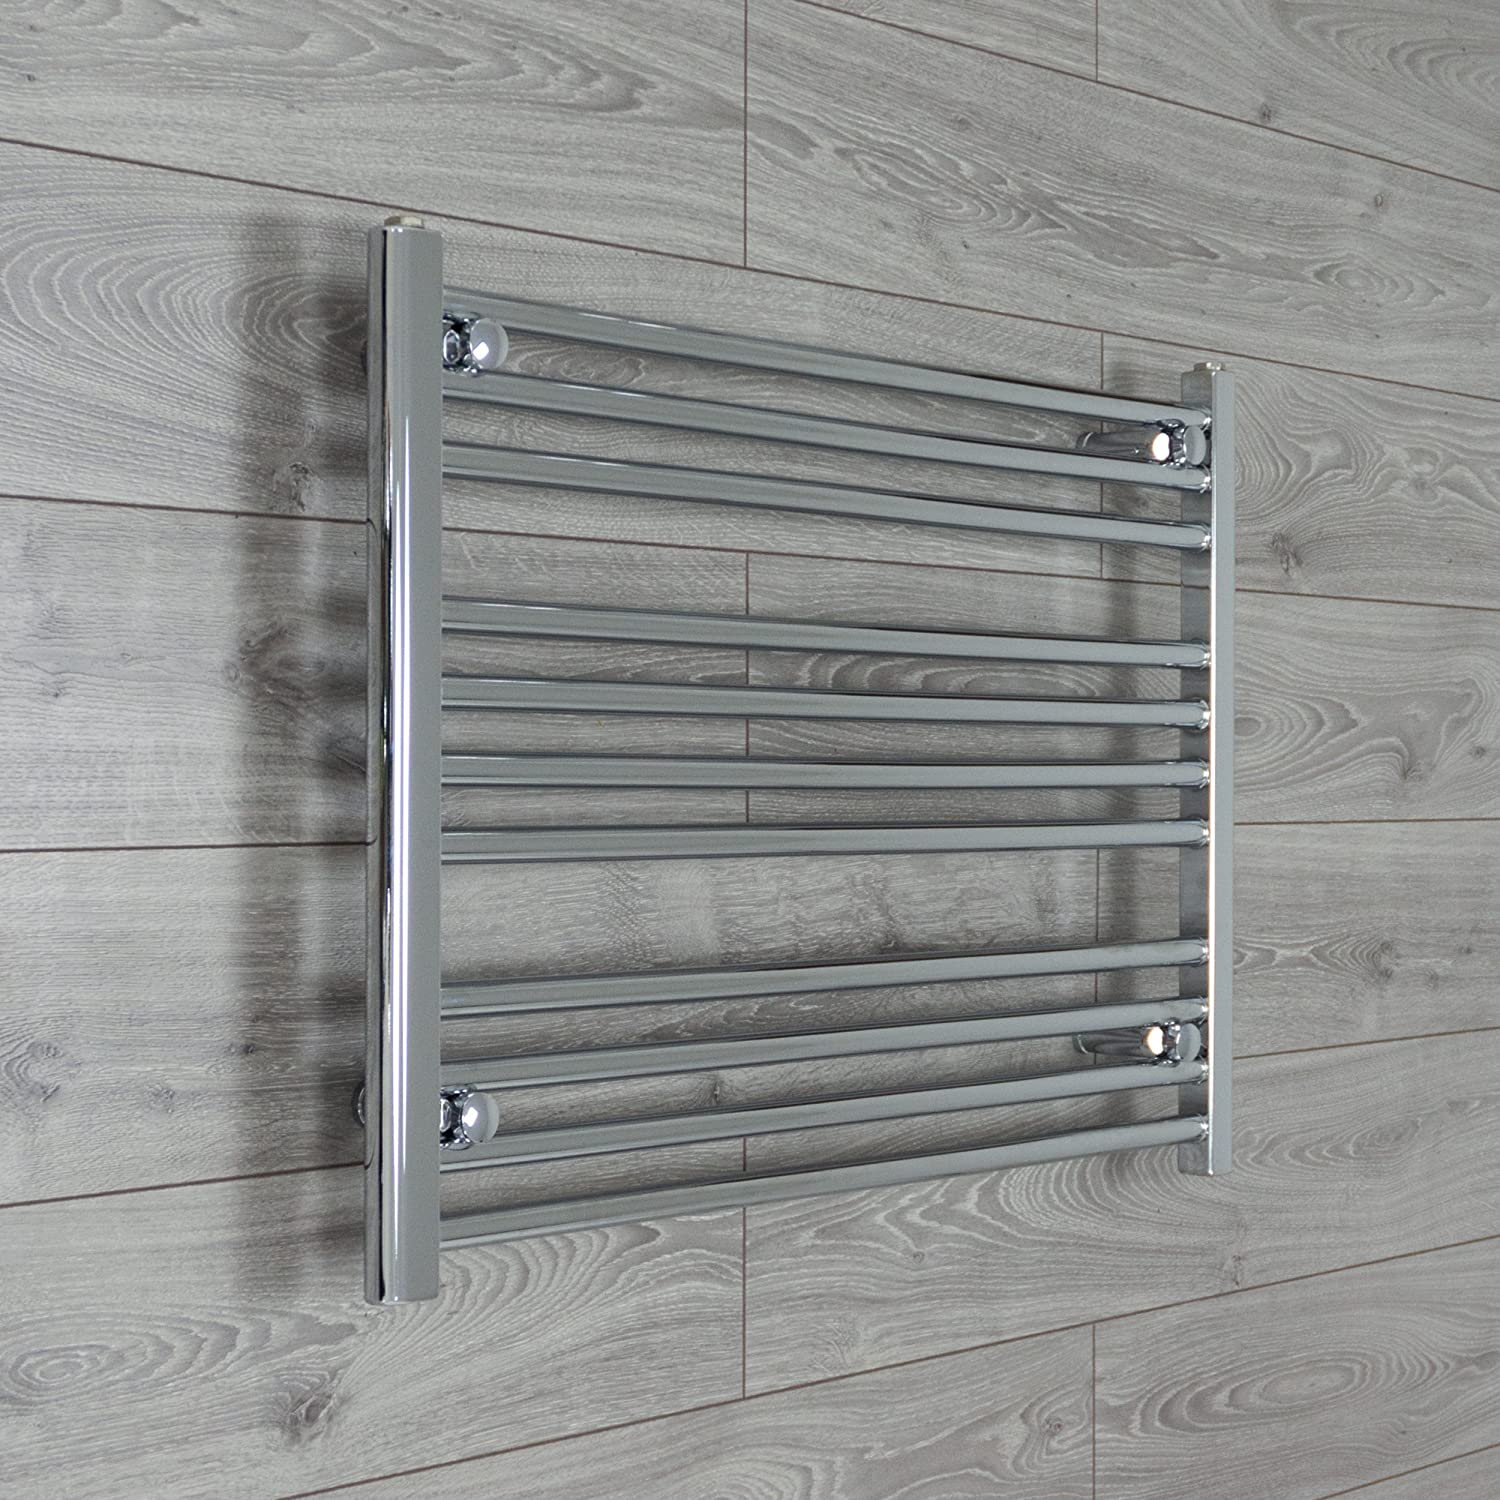 900mm wide 600mm high Chrome Heated Towel Rails Bathroom